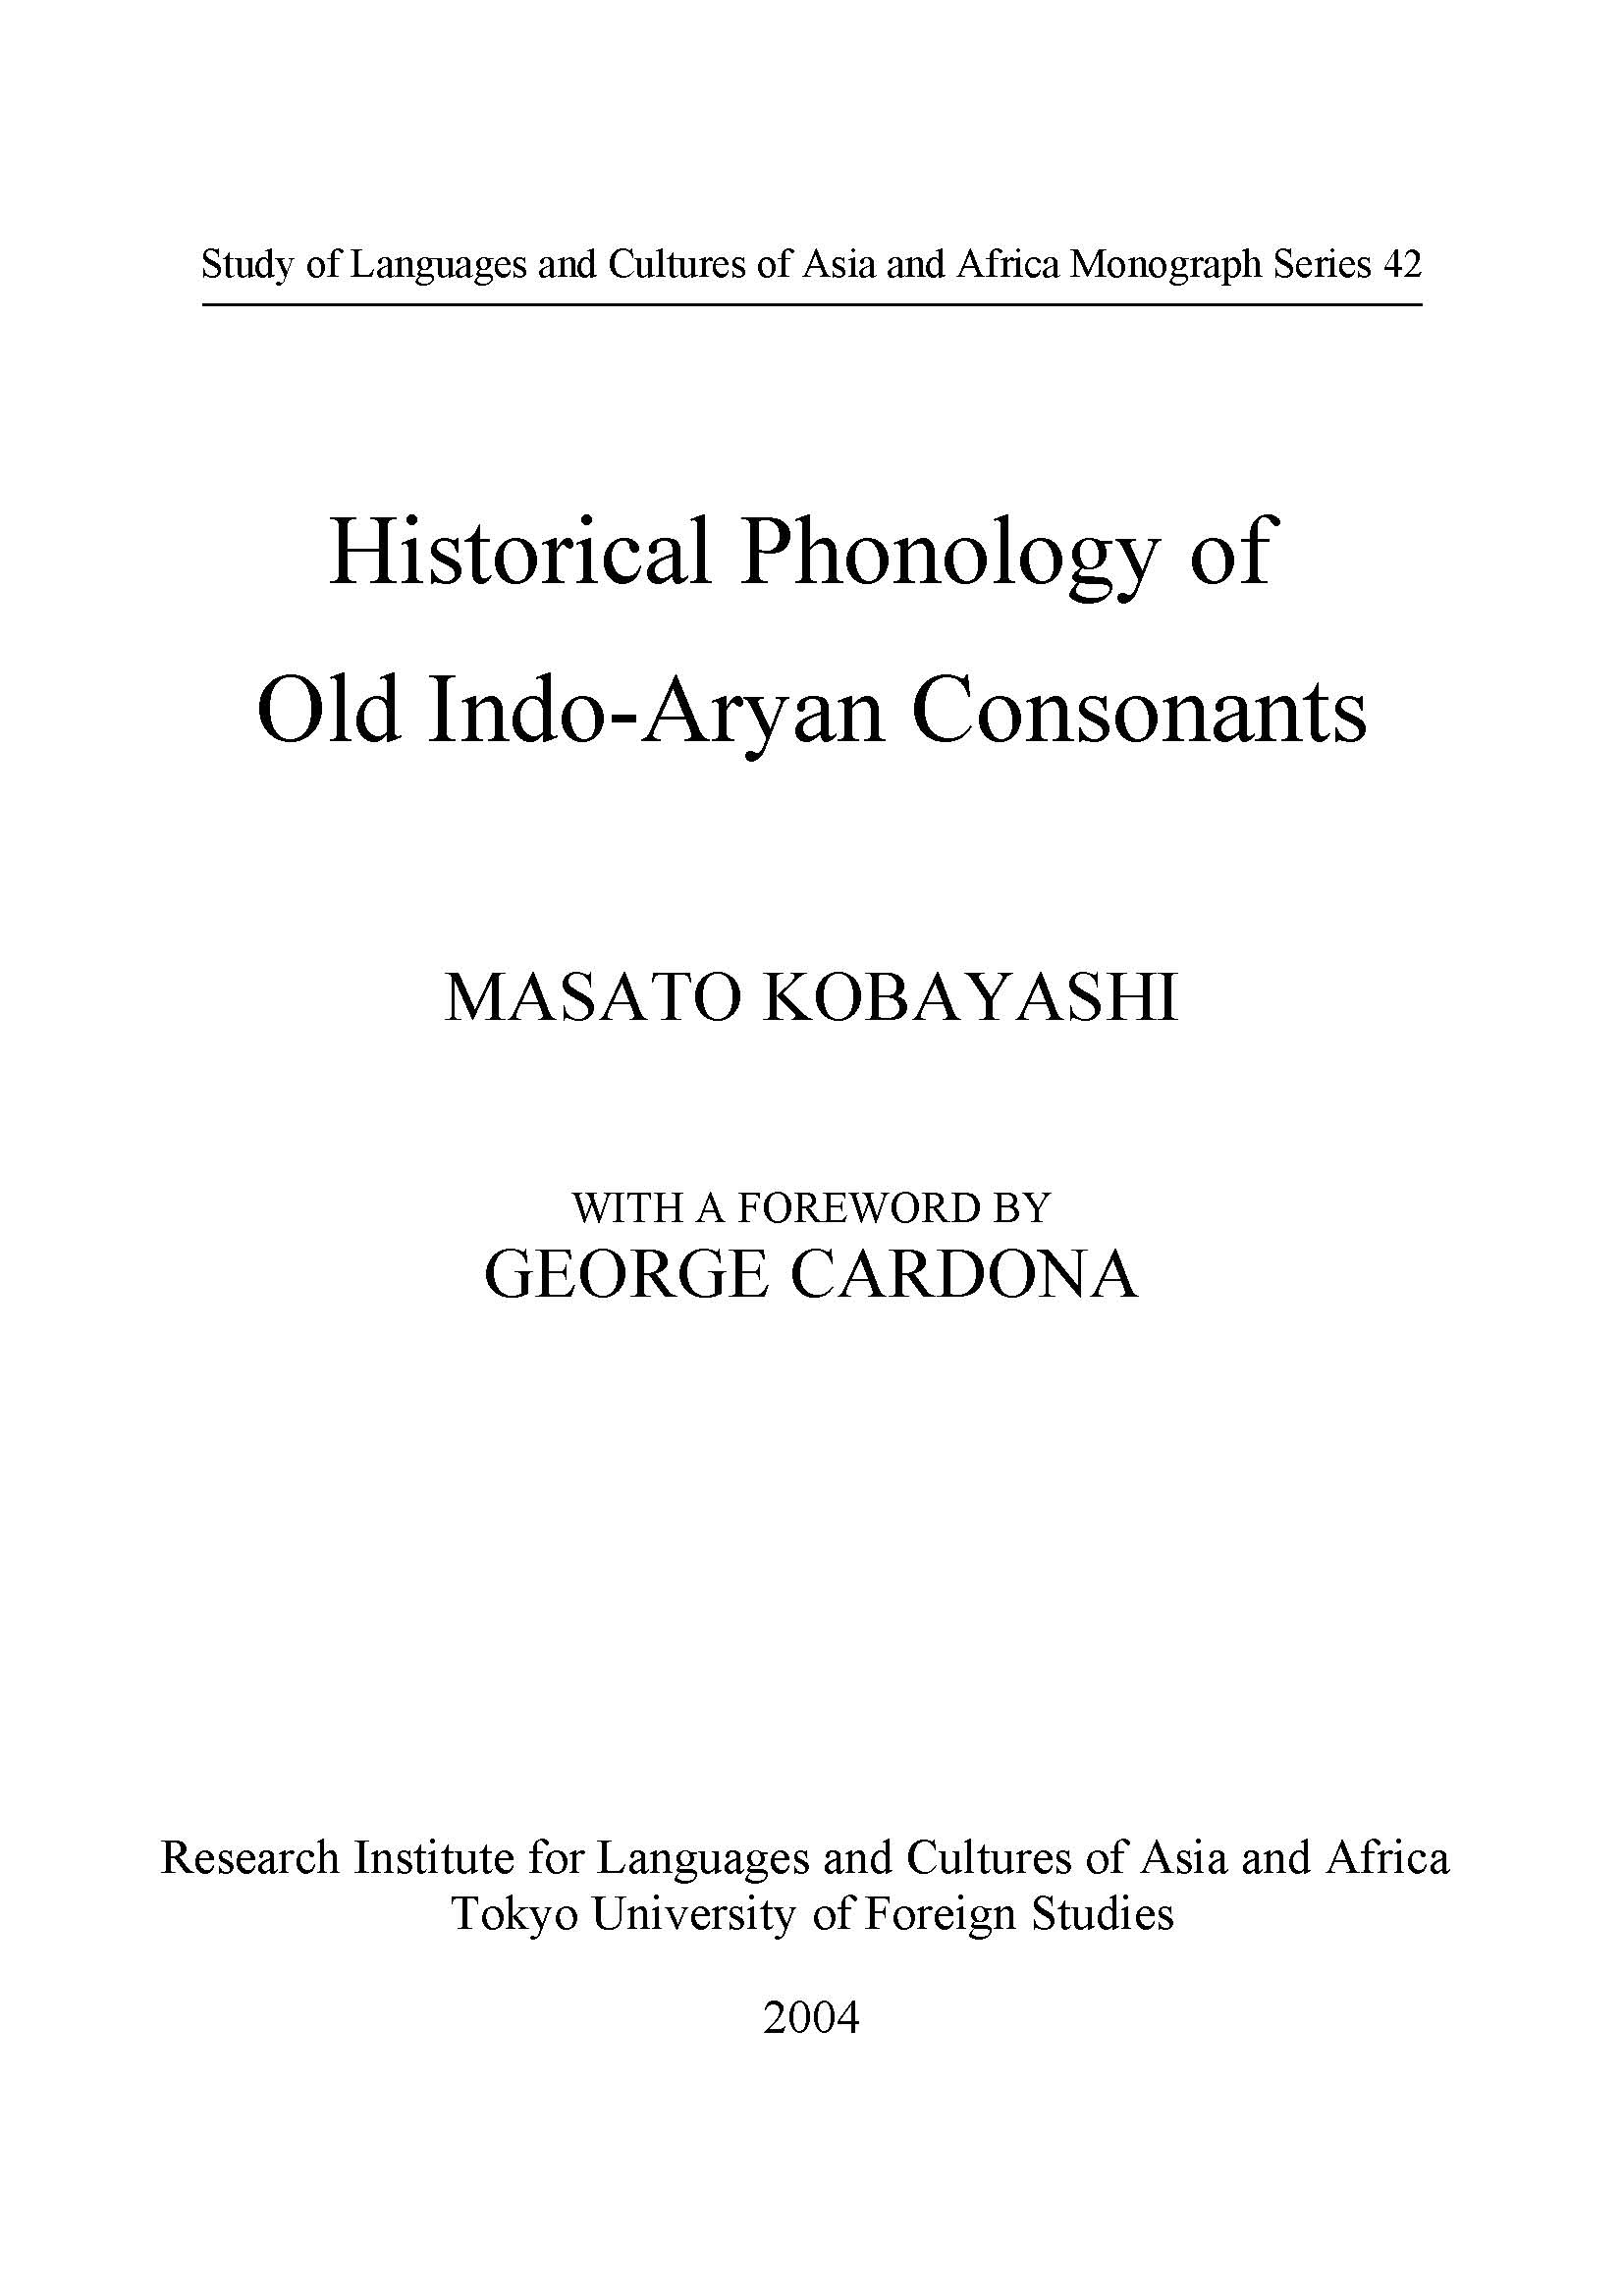 Historical Phonology of Old Indo-Aryan Consonants